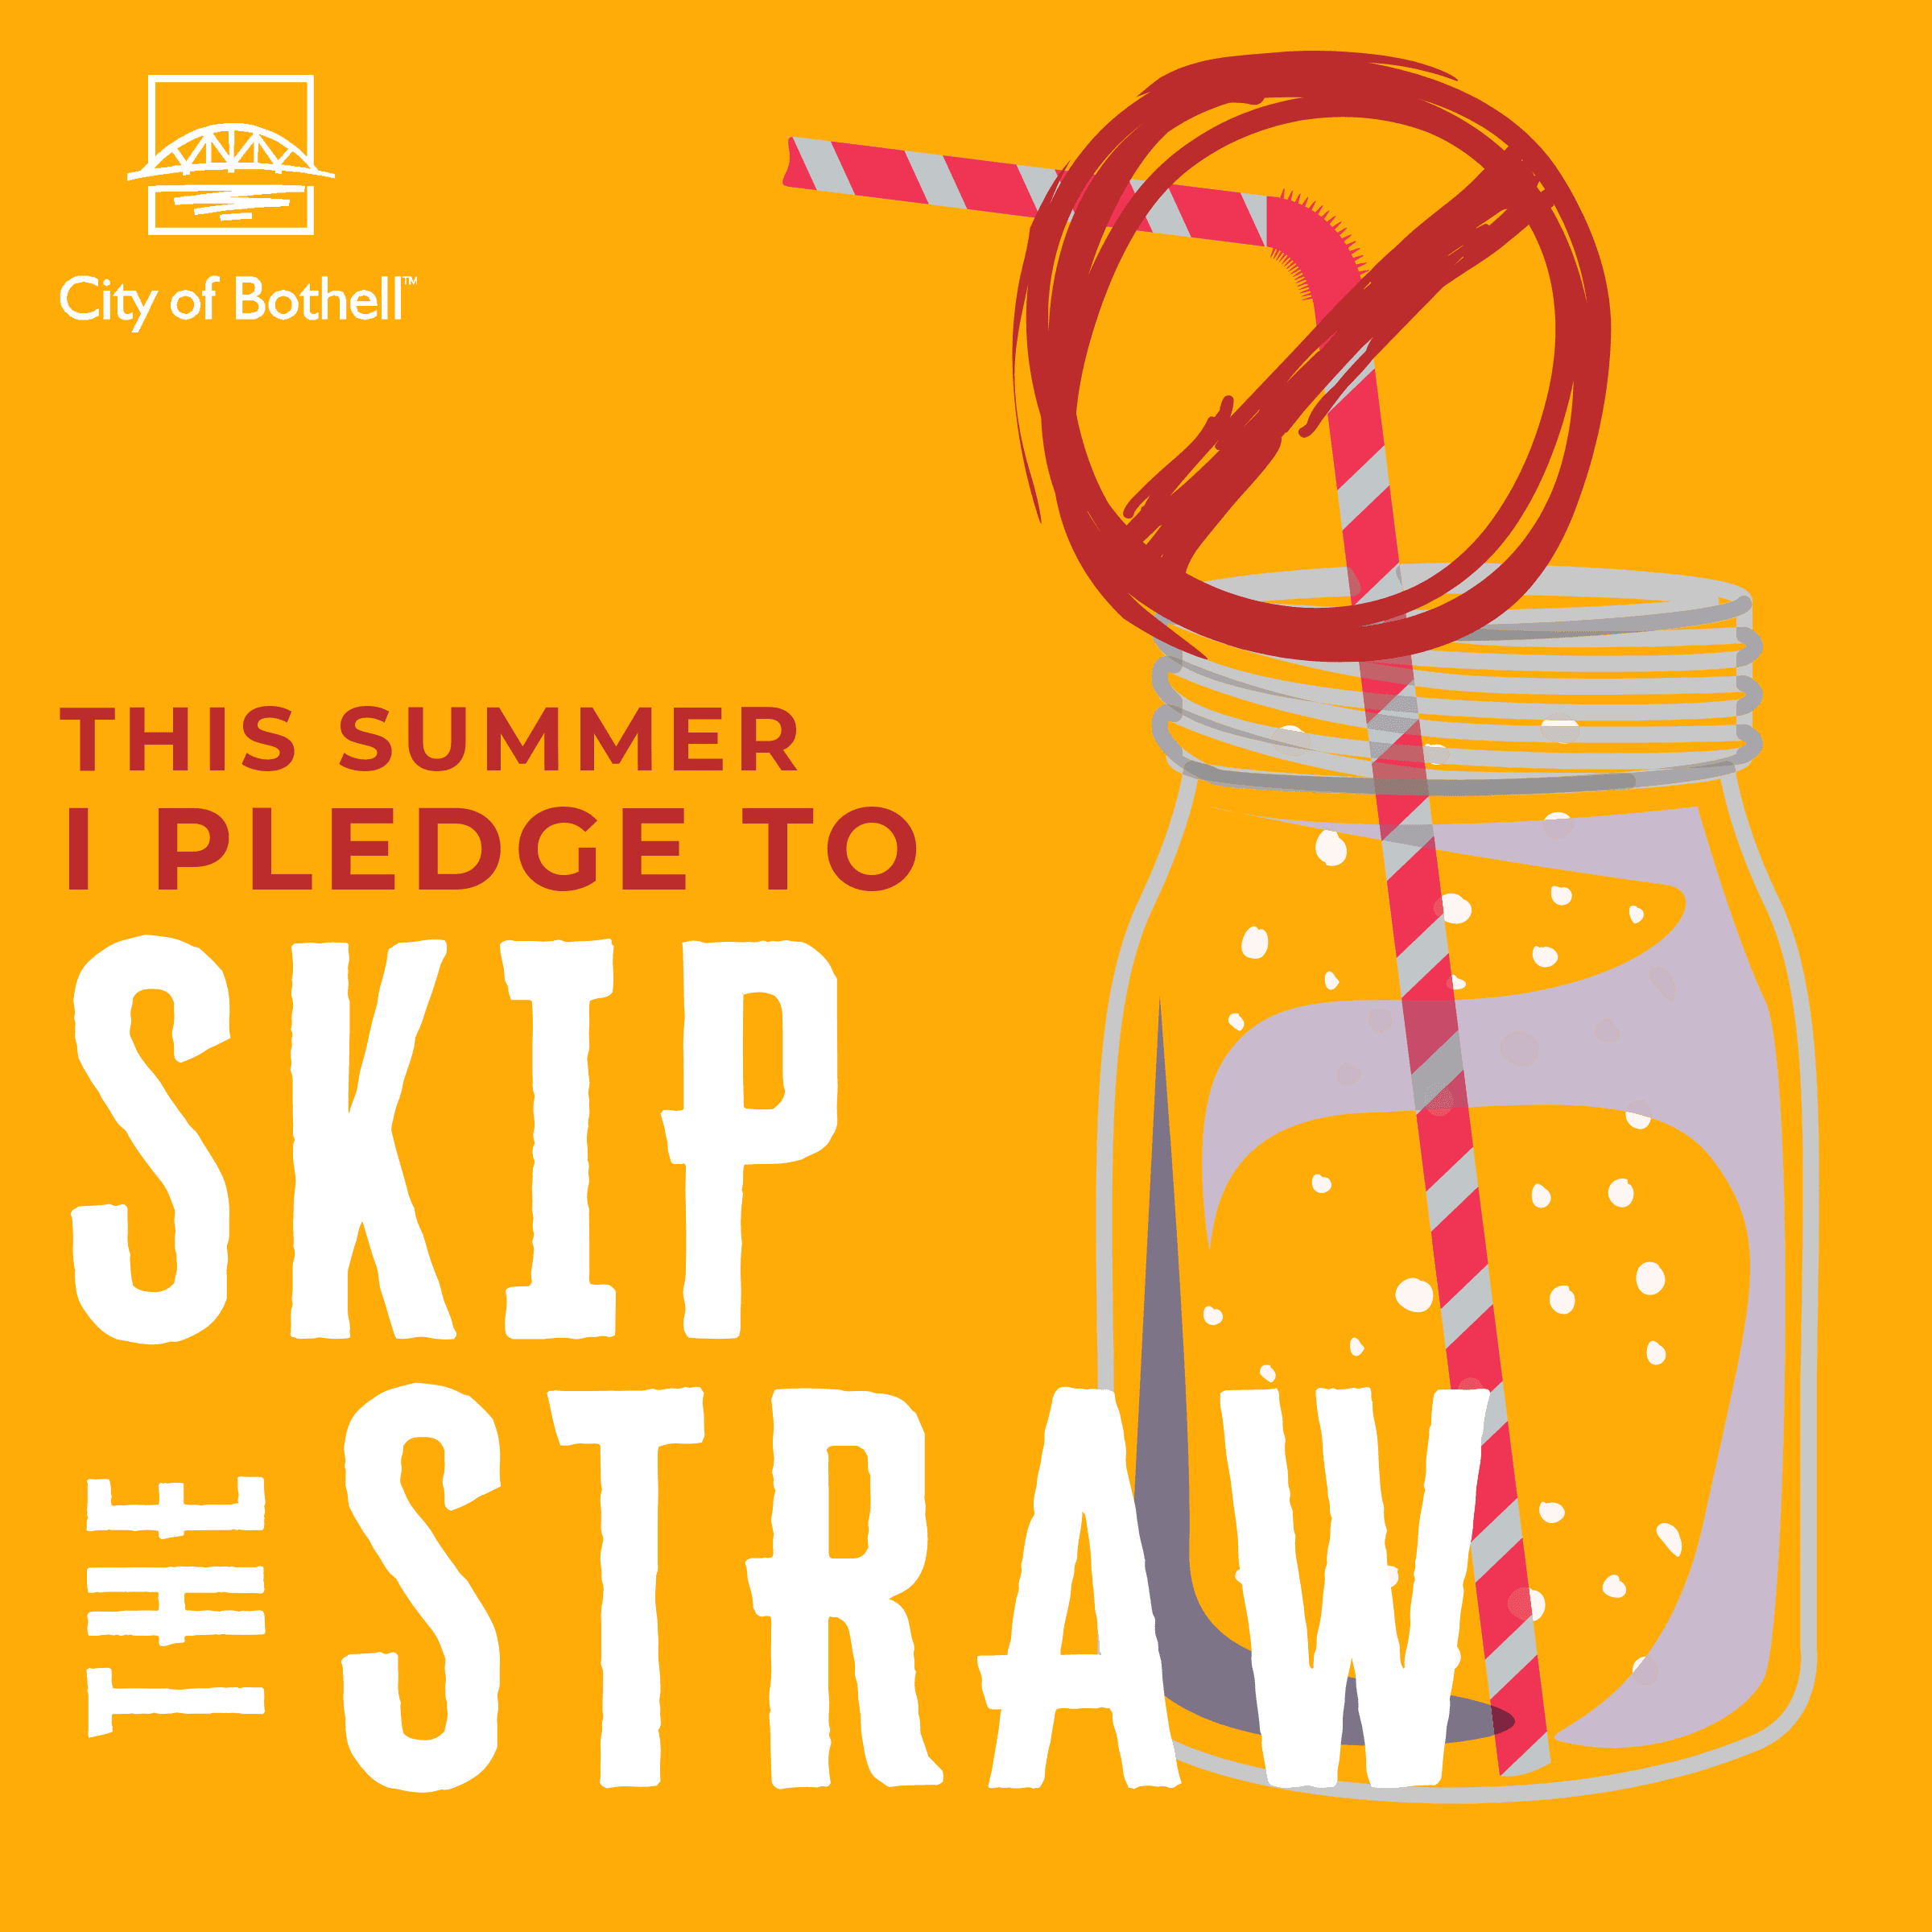 Green Summer Pledge - Skip the straw